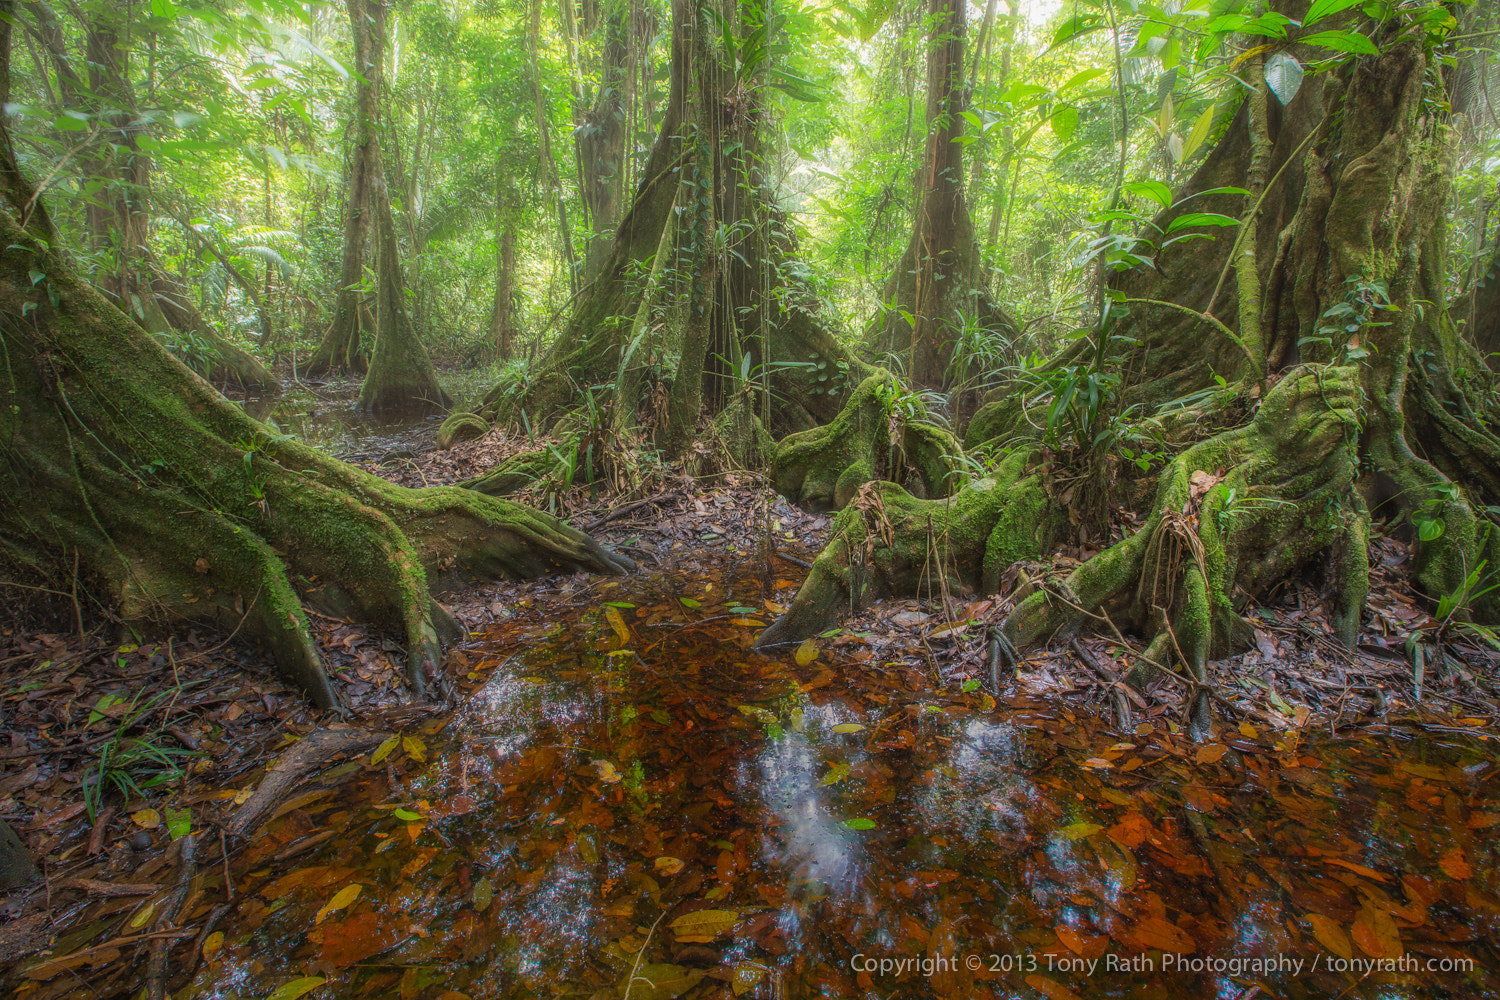 Photograph Kaway Swamp, Cockscomb Basin Wildlife Sanctuary, Belize by Tony Rath on 500px